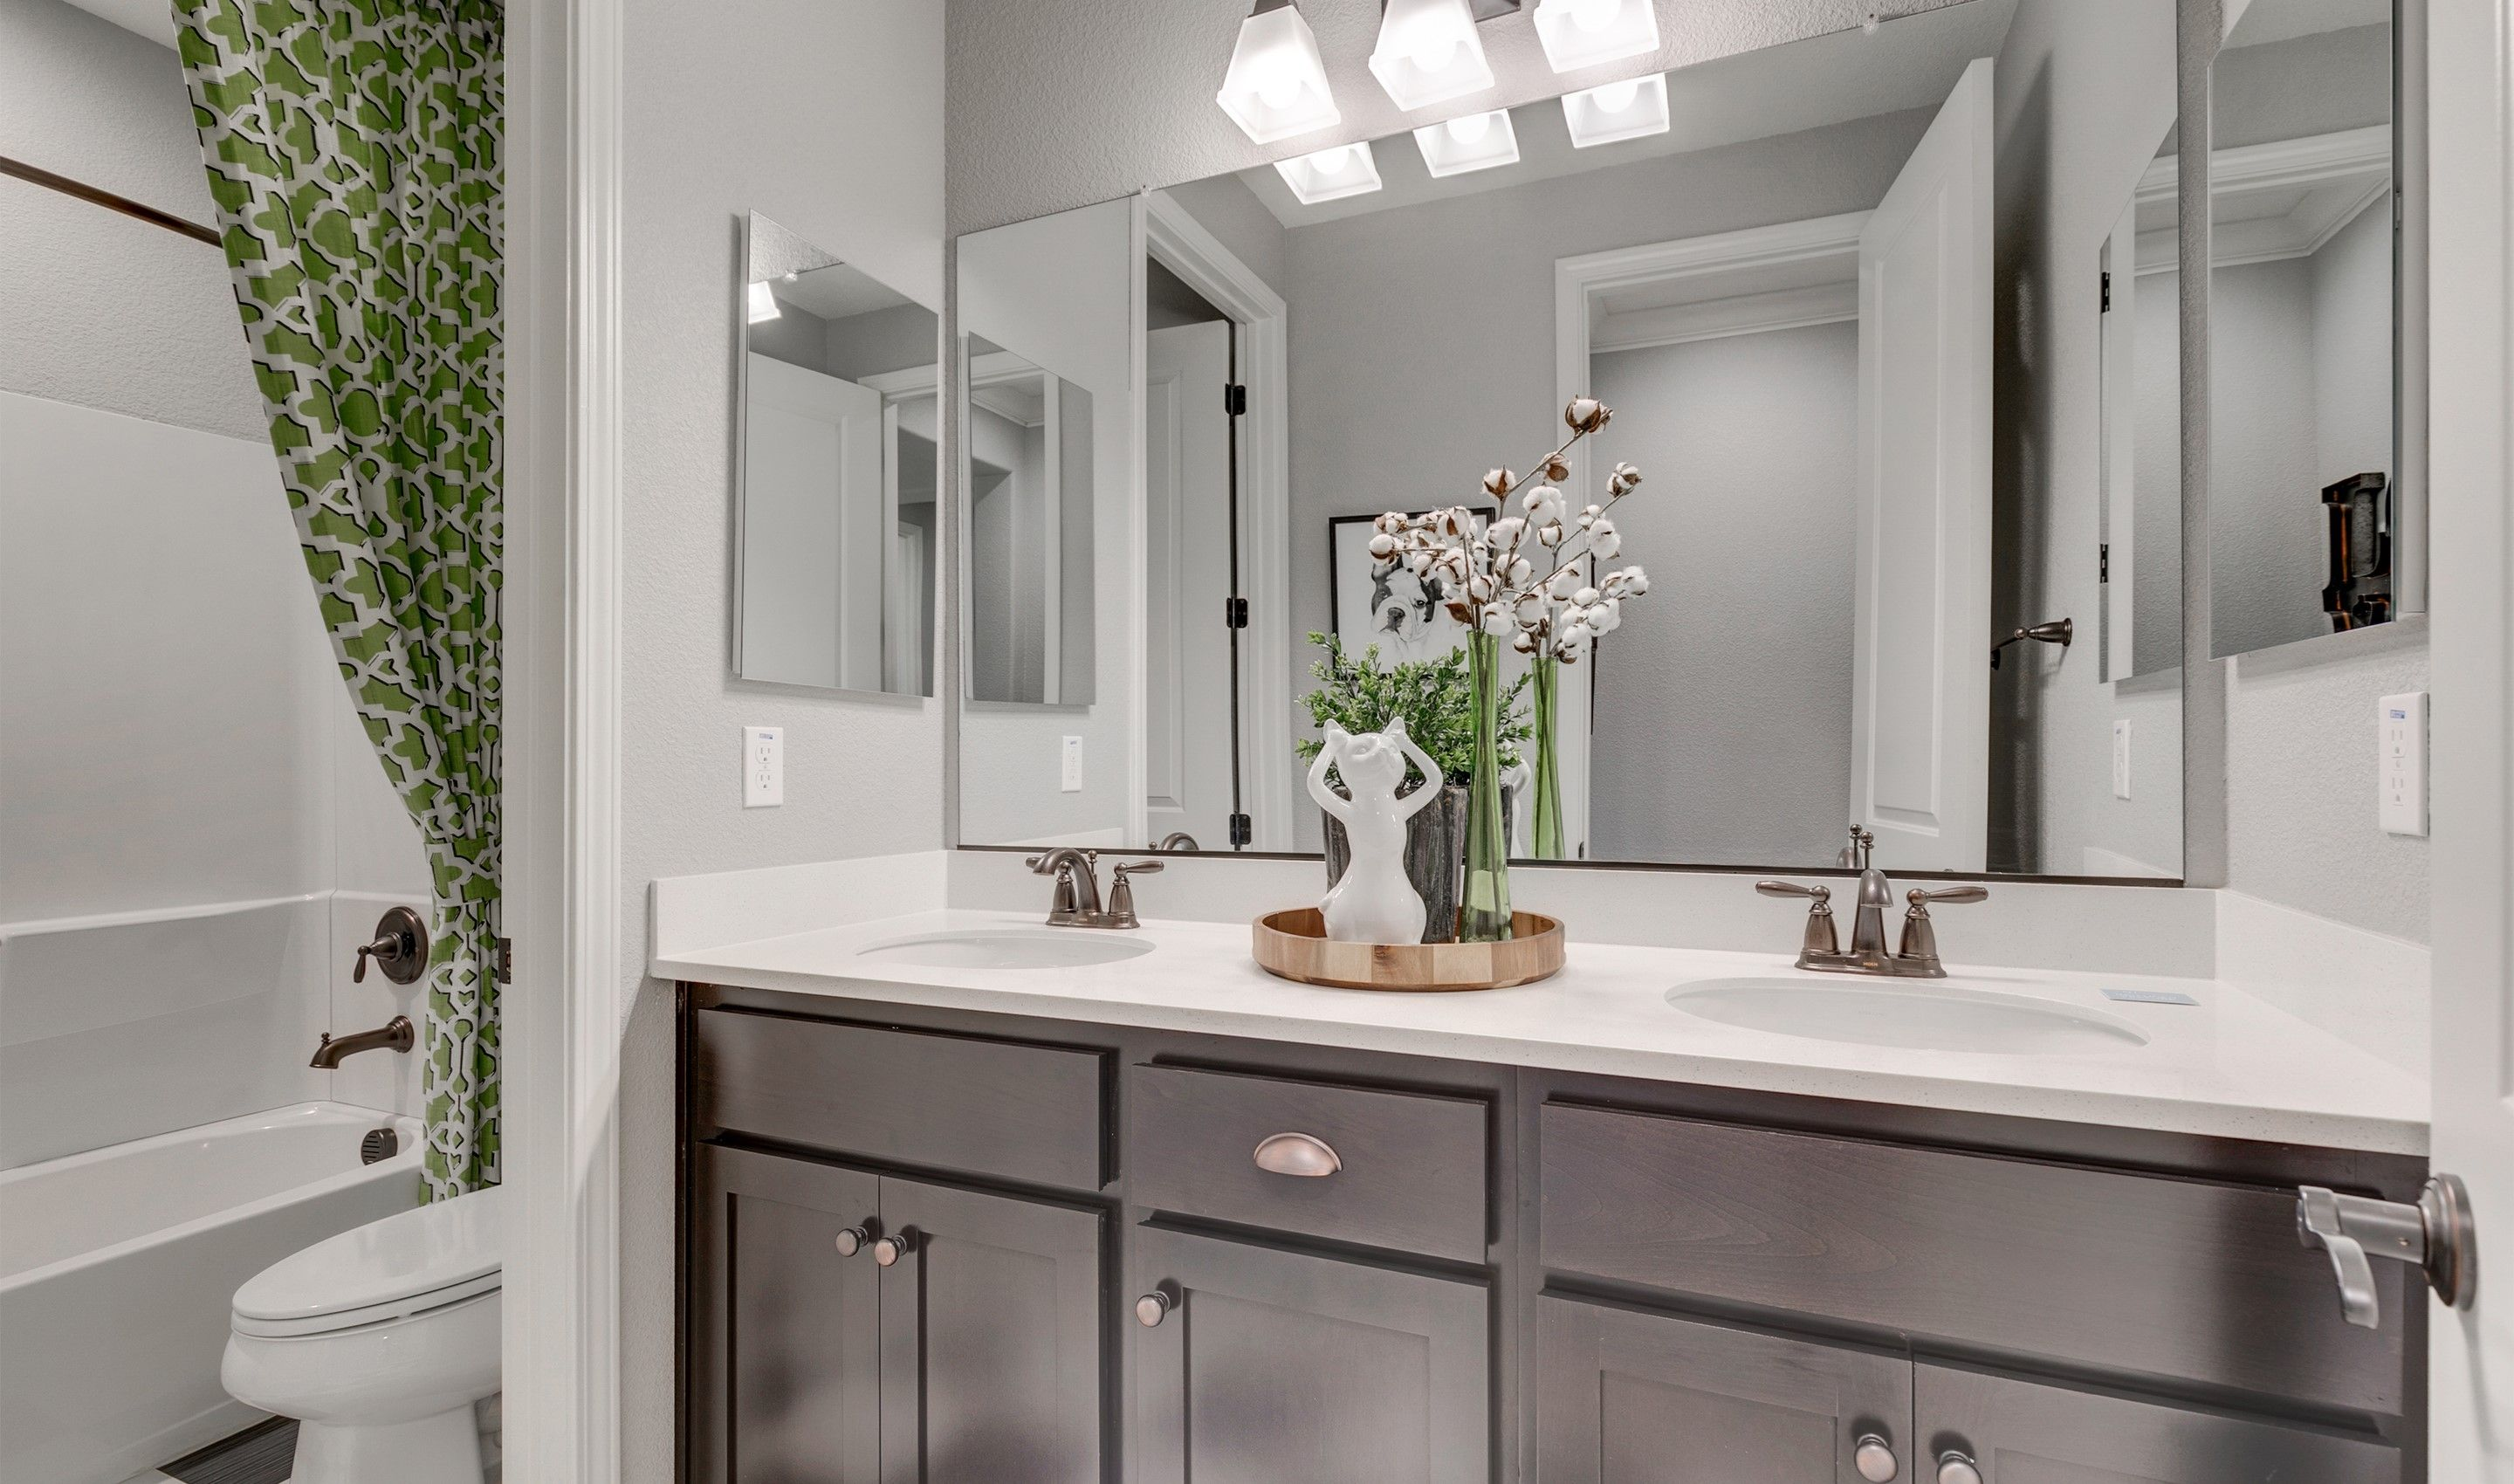 Bathroom featured in the Canopy By K. Hovnanian® Homes in Stockton-Lodi, CA